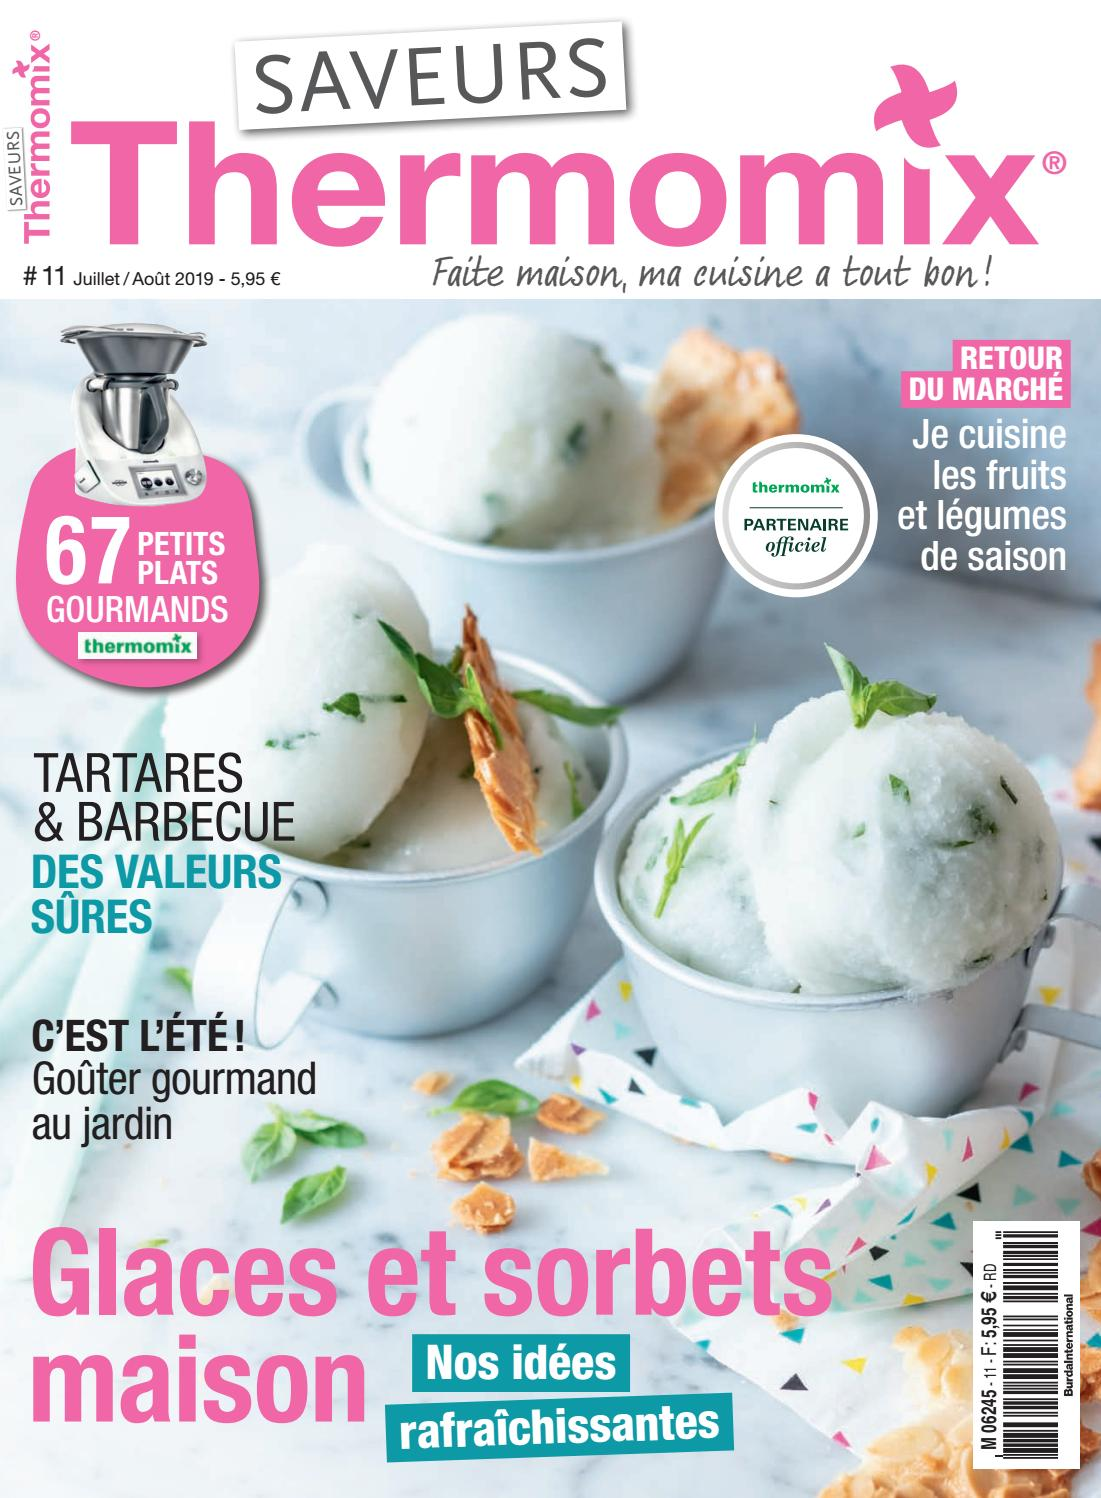 Thermomix Cuisiner Pour 6 Et Plus saveurs thermomix n° 11saveurs magazine - issuu